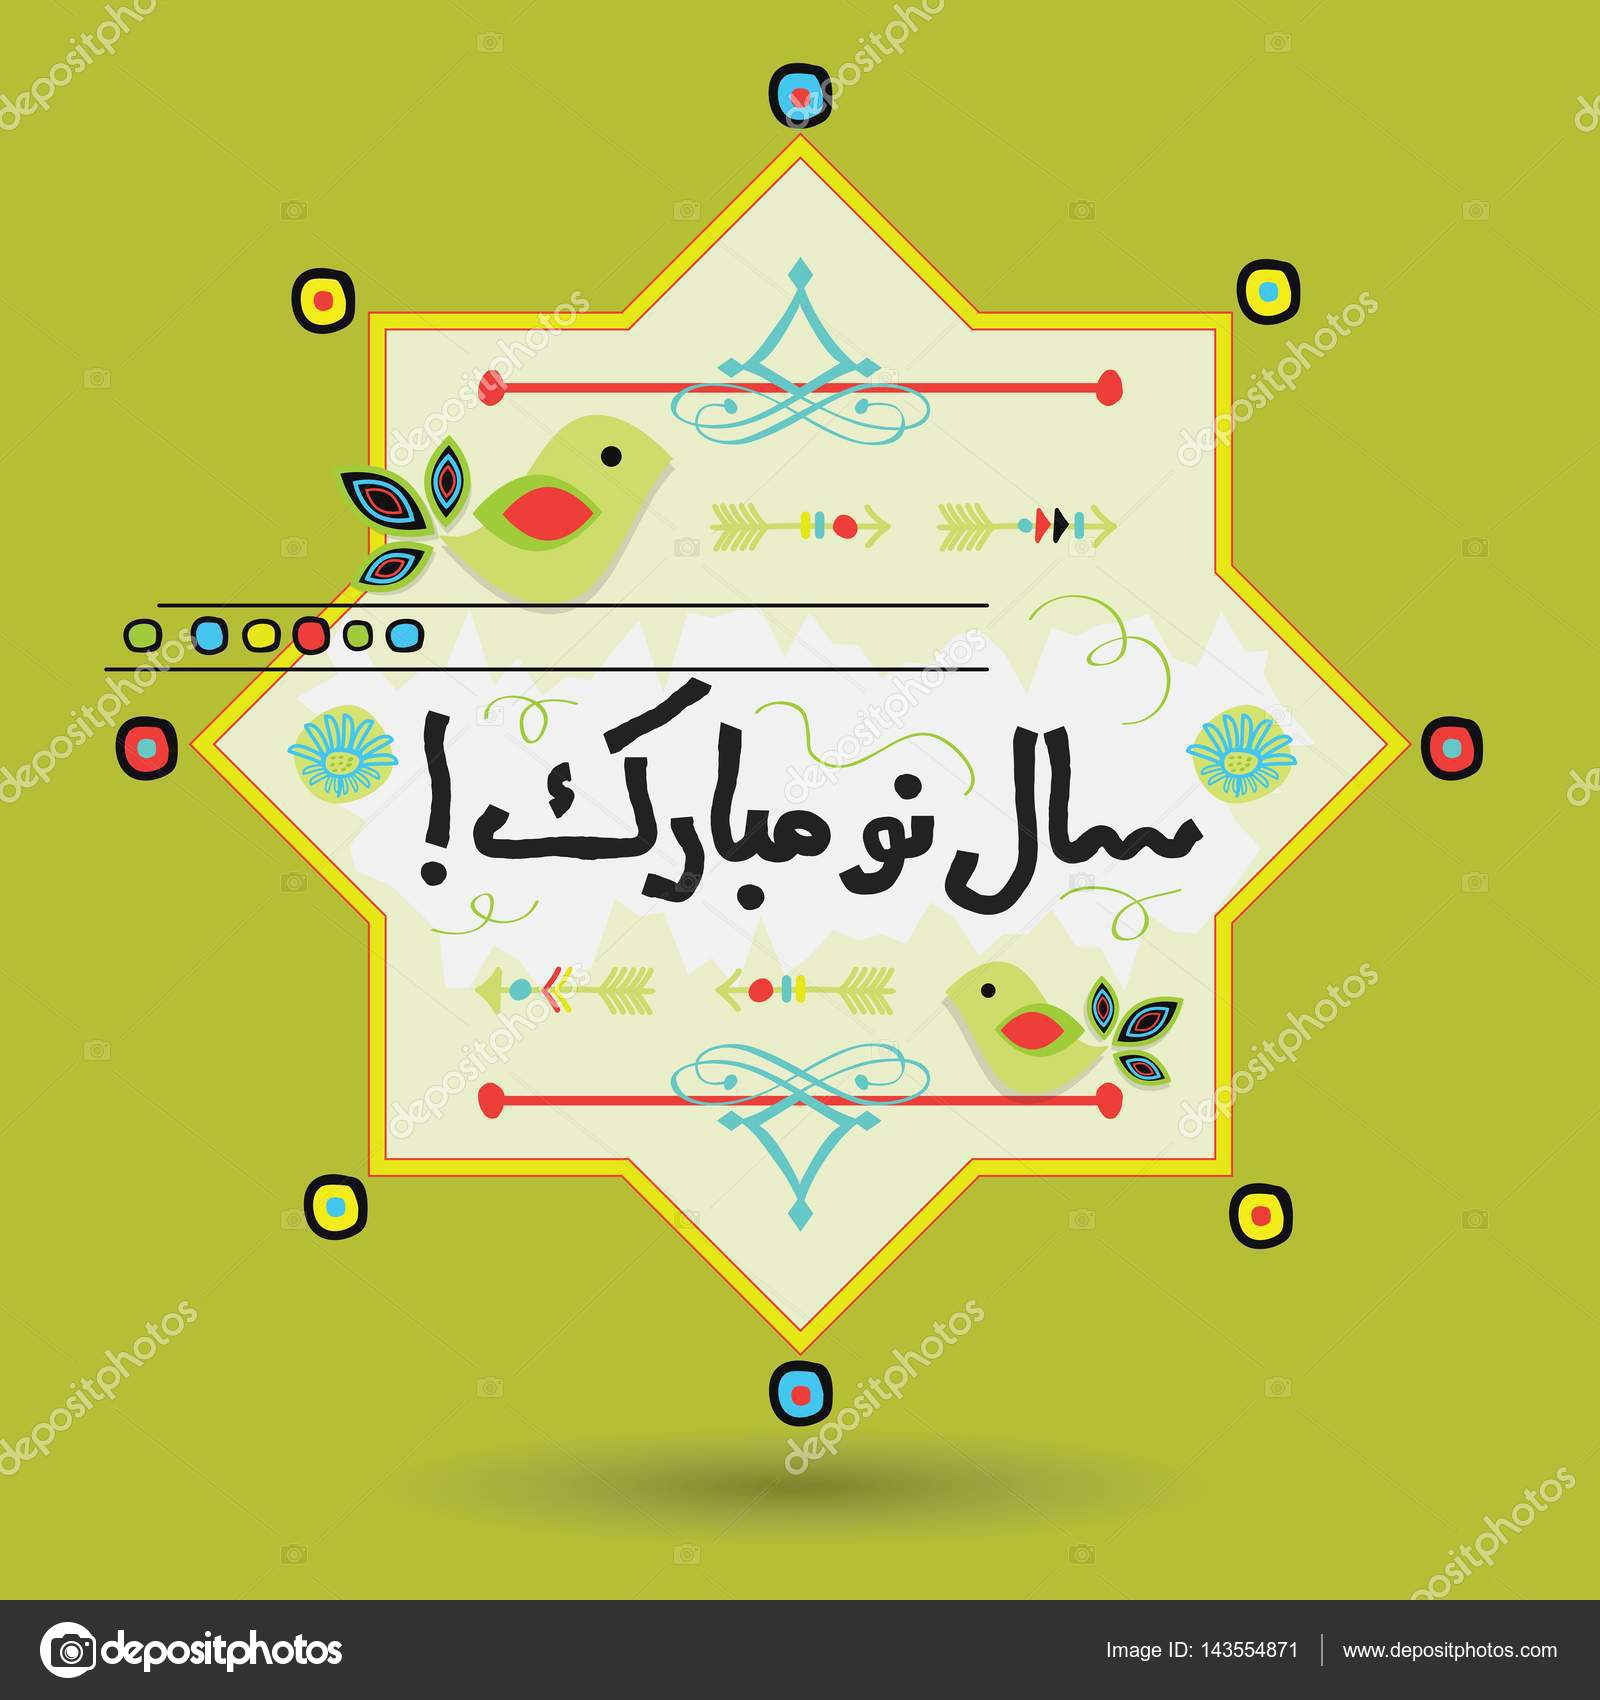 Abstract green happy persian new year message in language farsi abstract green happy persian new year message in language farsi emblem with colorful birds decoration kristyandbryce Gallery